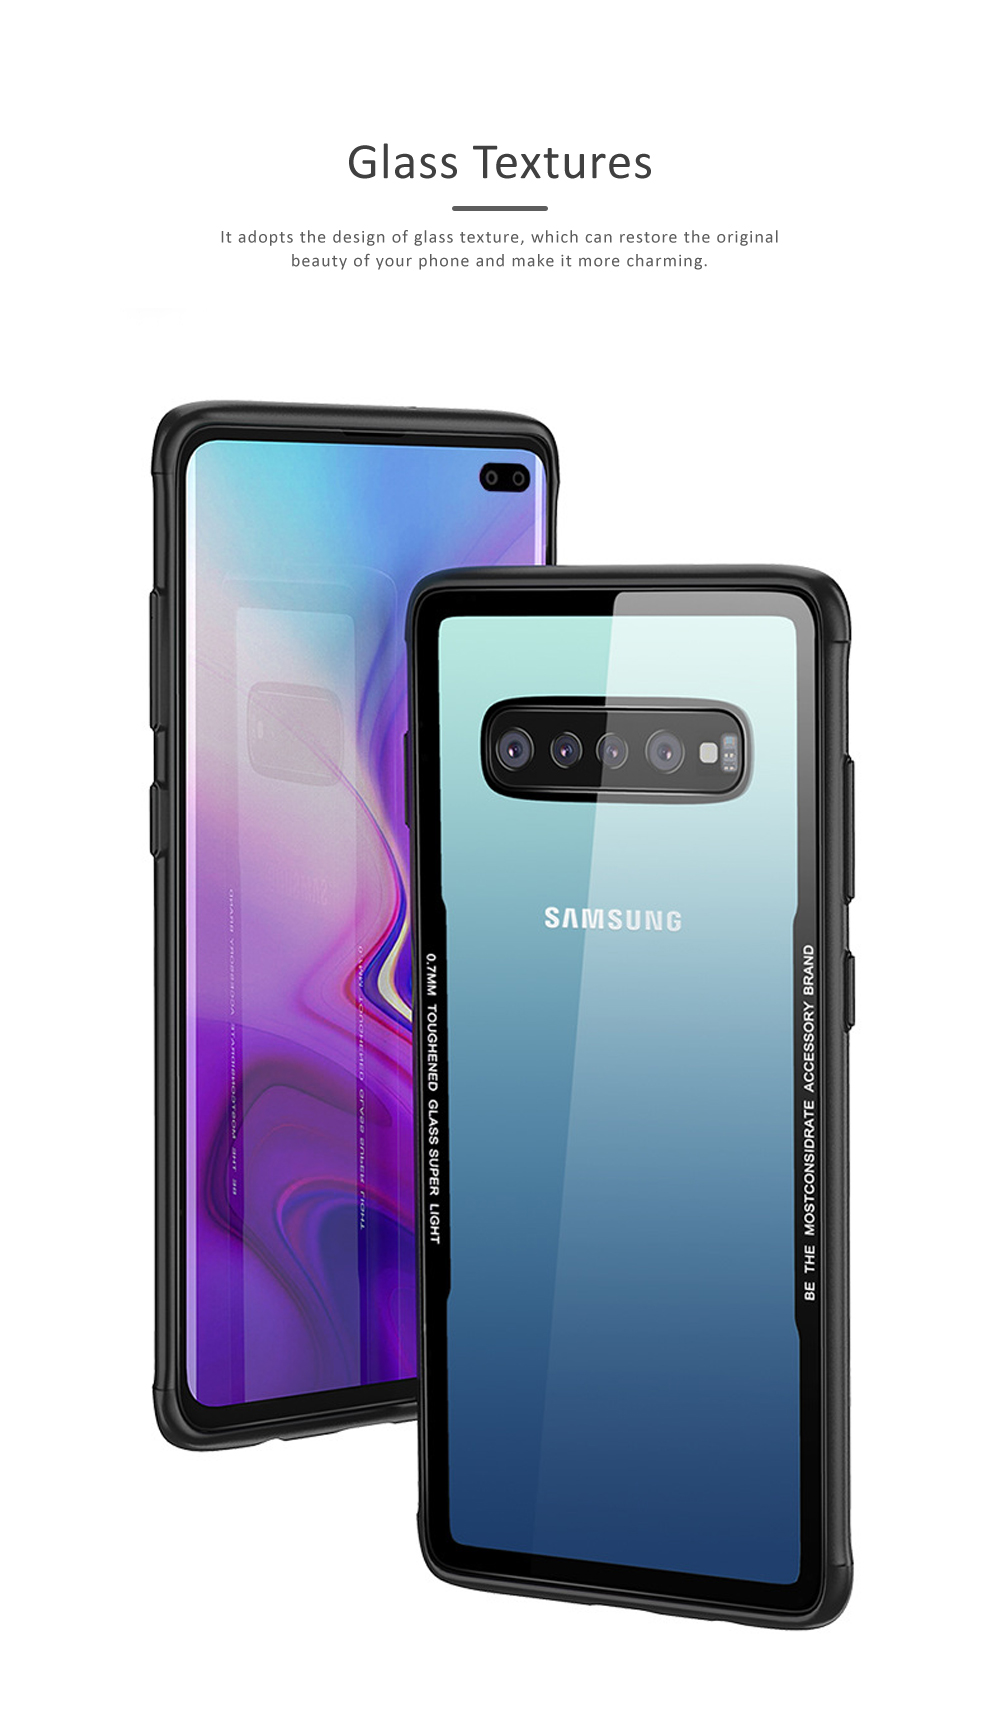 Samsung S10 Phone Case, New Transparent S10 Tempered Glass Case, Anti-fall & Anti-Scratch Samsung Contracted Phone Case for S10, S10 Plus, S10 Lite 2